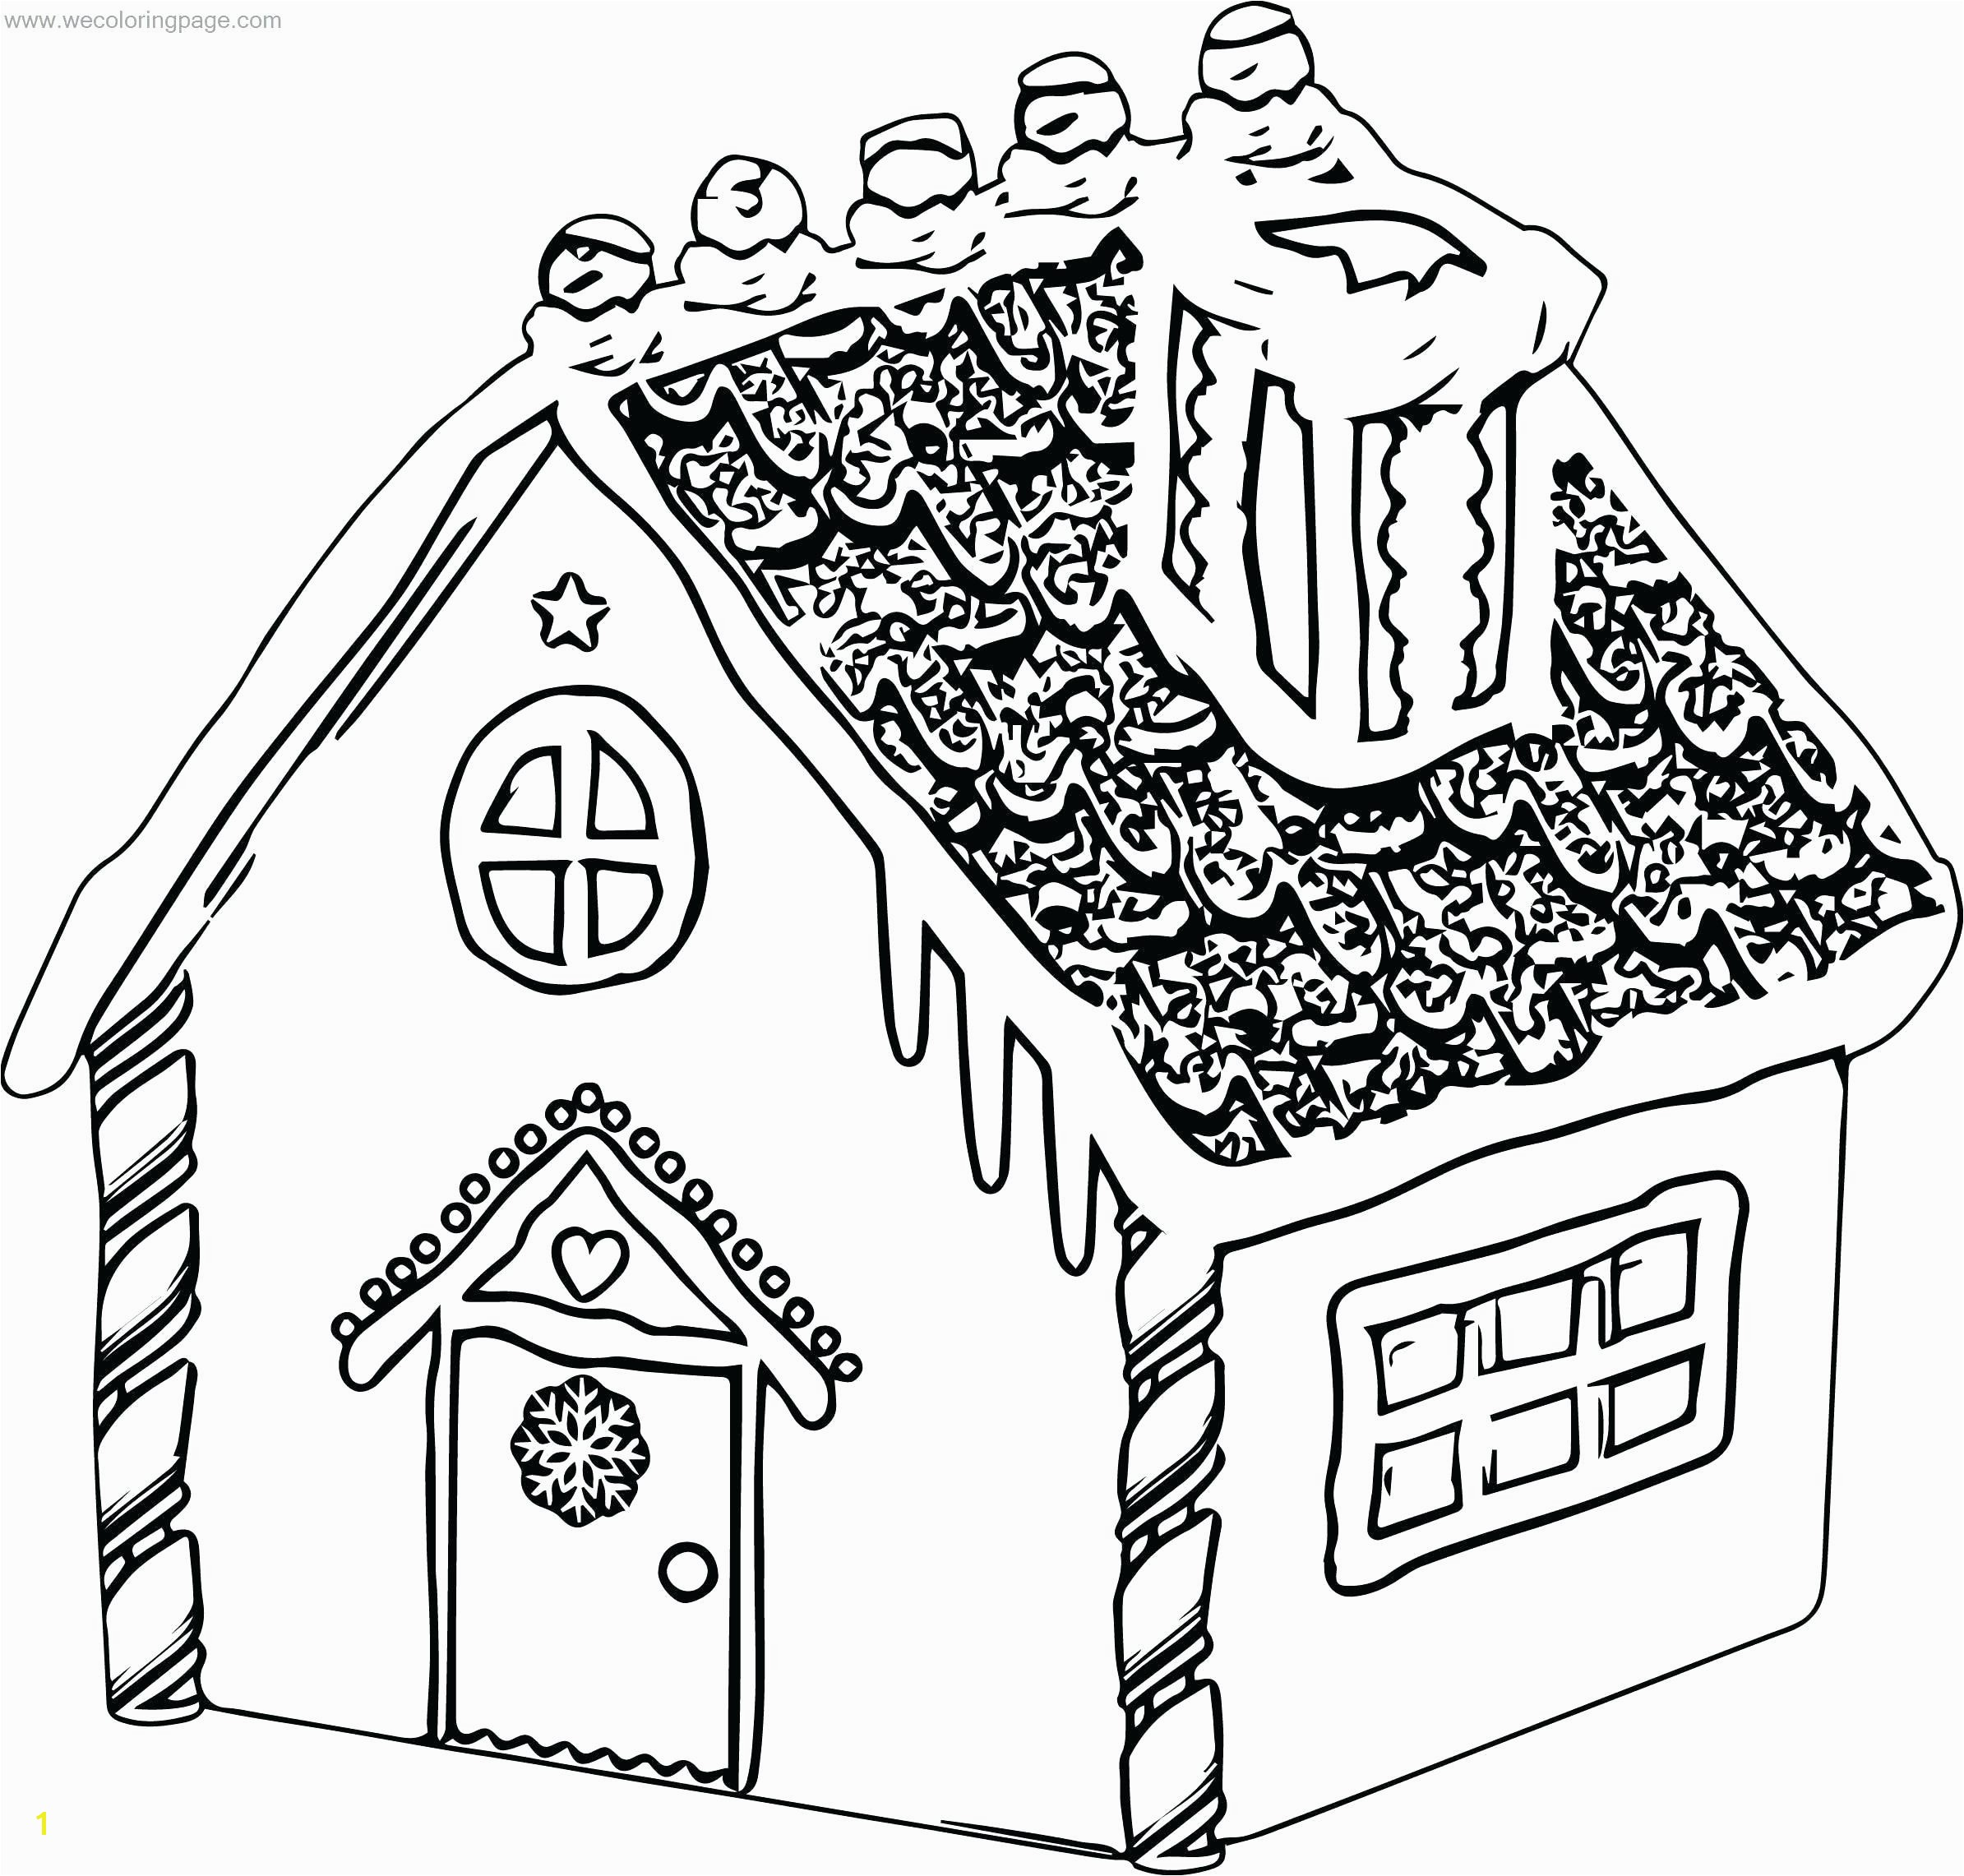 Hansel and Gretel Candy House Coloring Page House Color Pages Candy House Coloring Page Hansel and